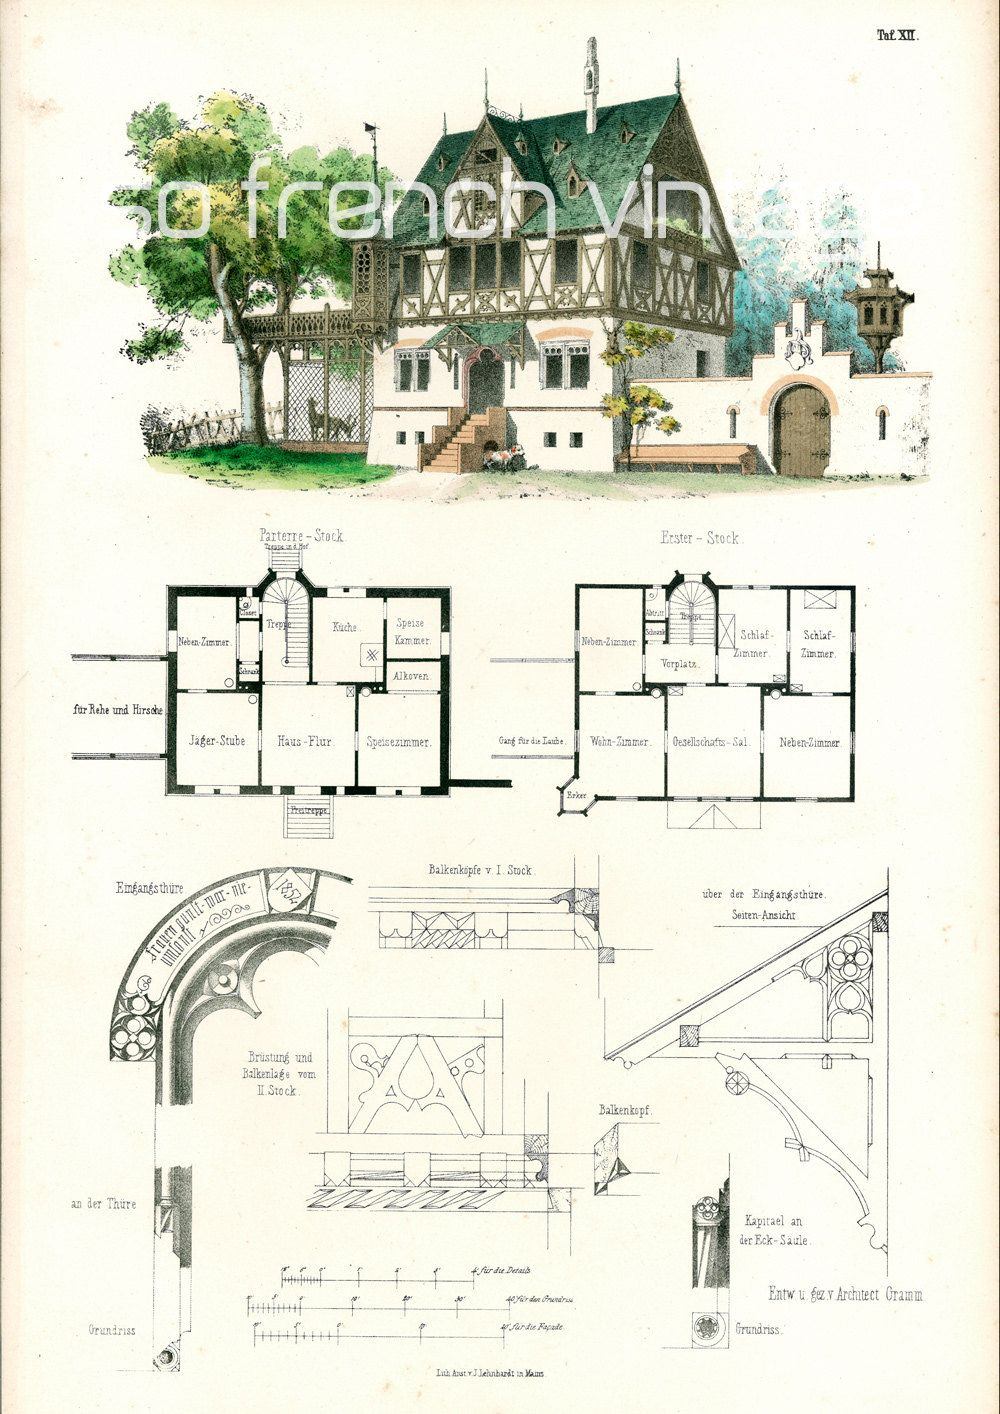 German House Designs: 1854 Maison Forestière Plans D'architecte Format A3